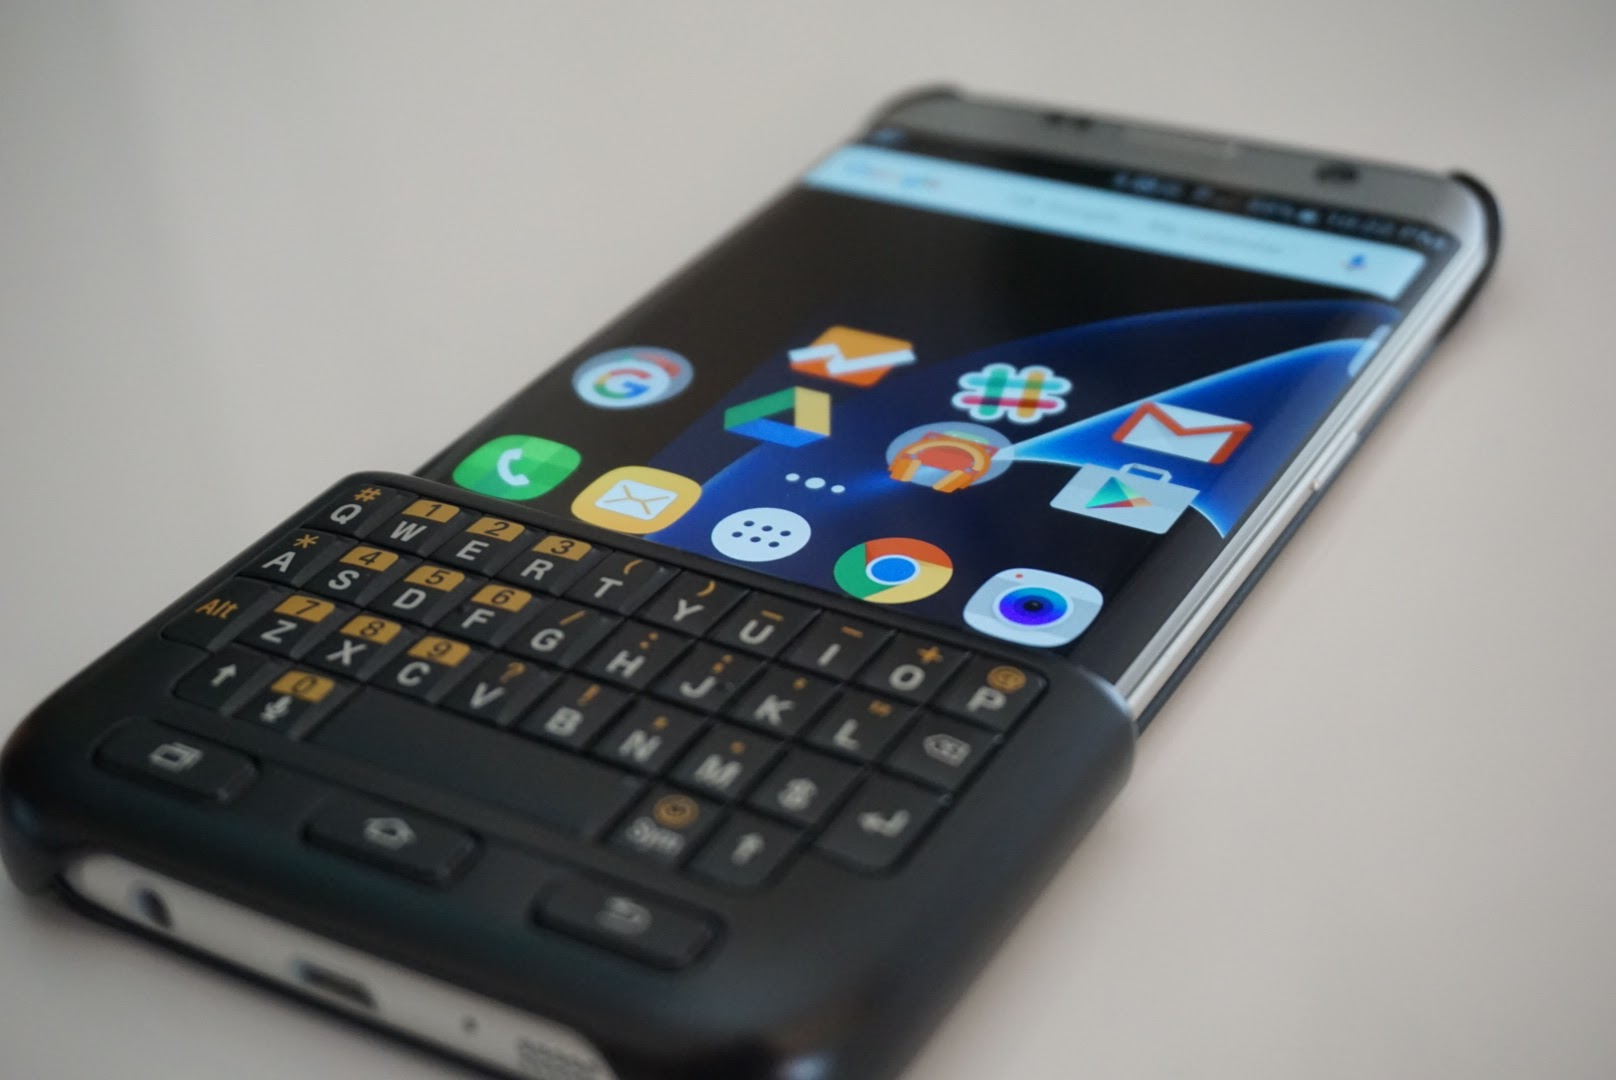 Blackberry revived on the Samsung Galaxy S7 edge: Keyboard Cover ...